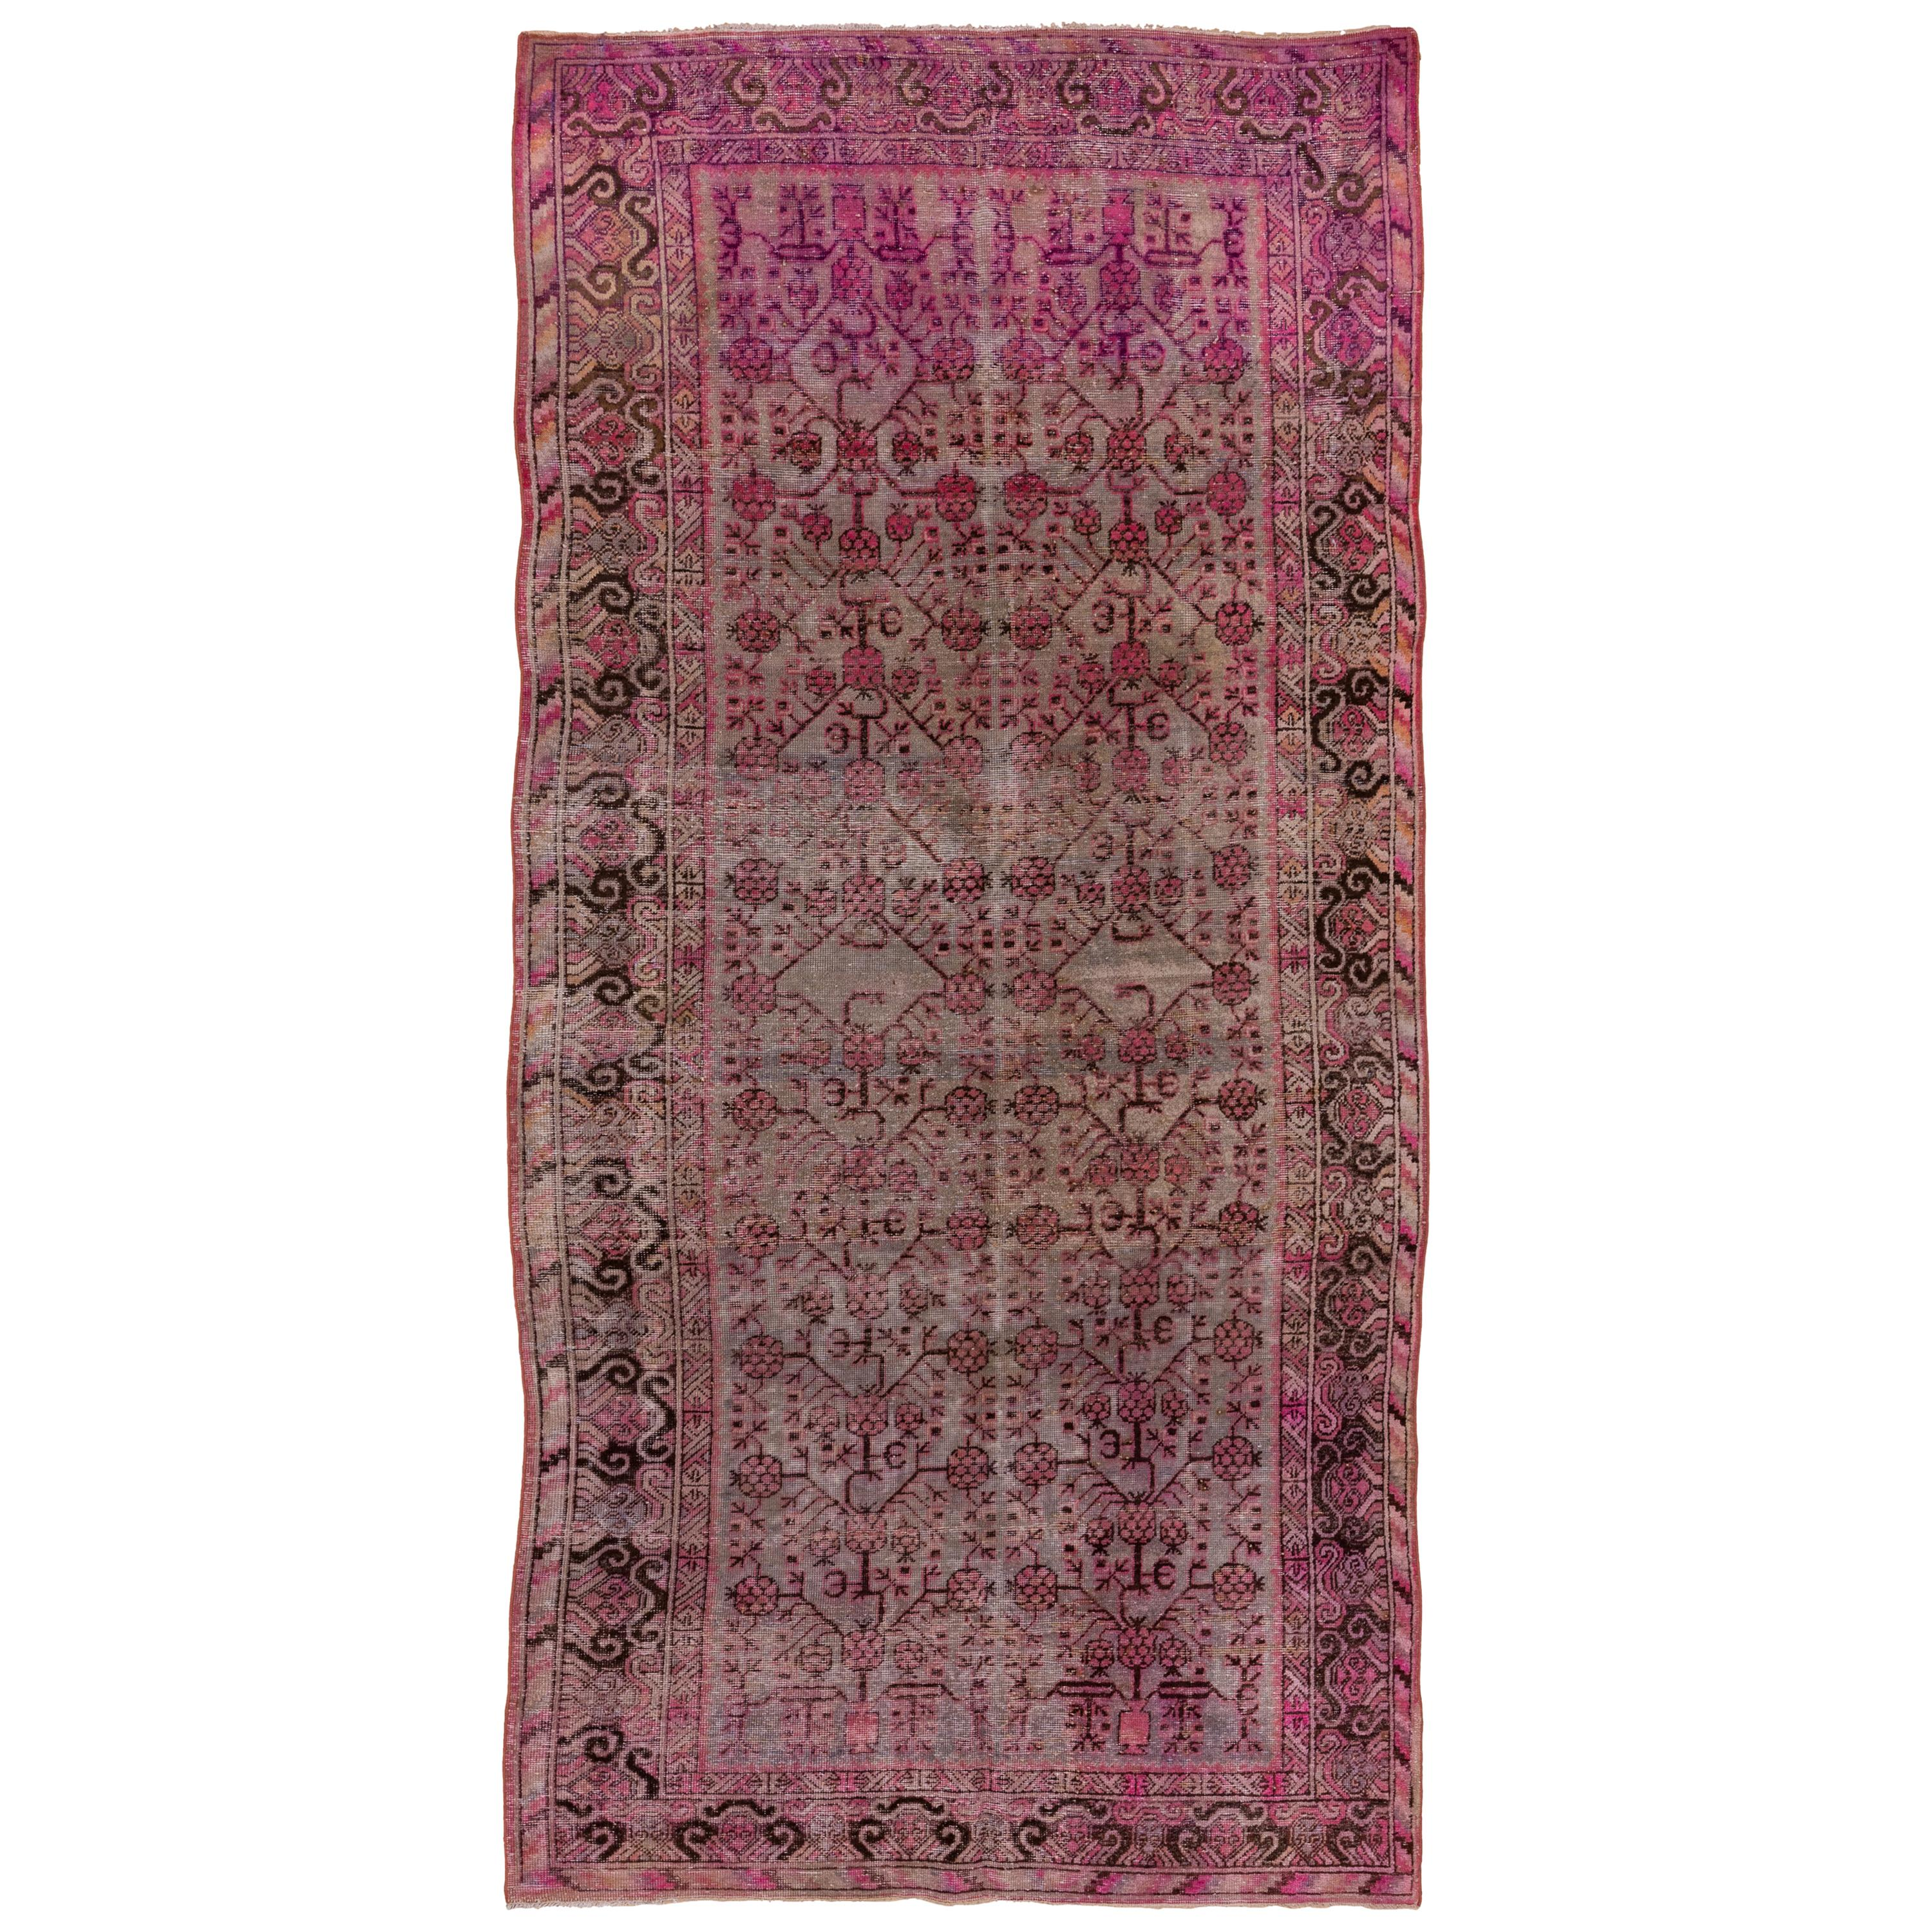 Antique Pink Khotan Rug, Gray Blue and Taupe Field, Pink and Brown Accents